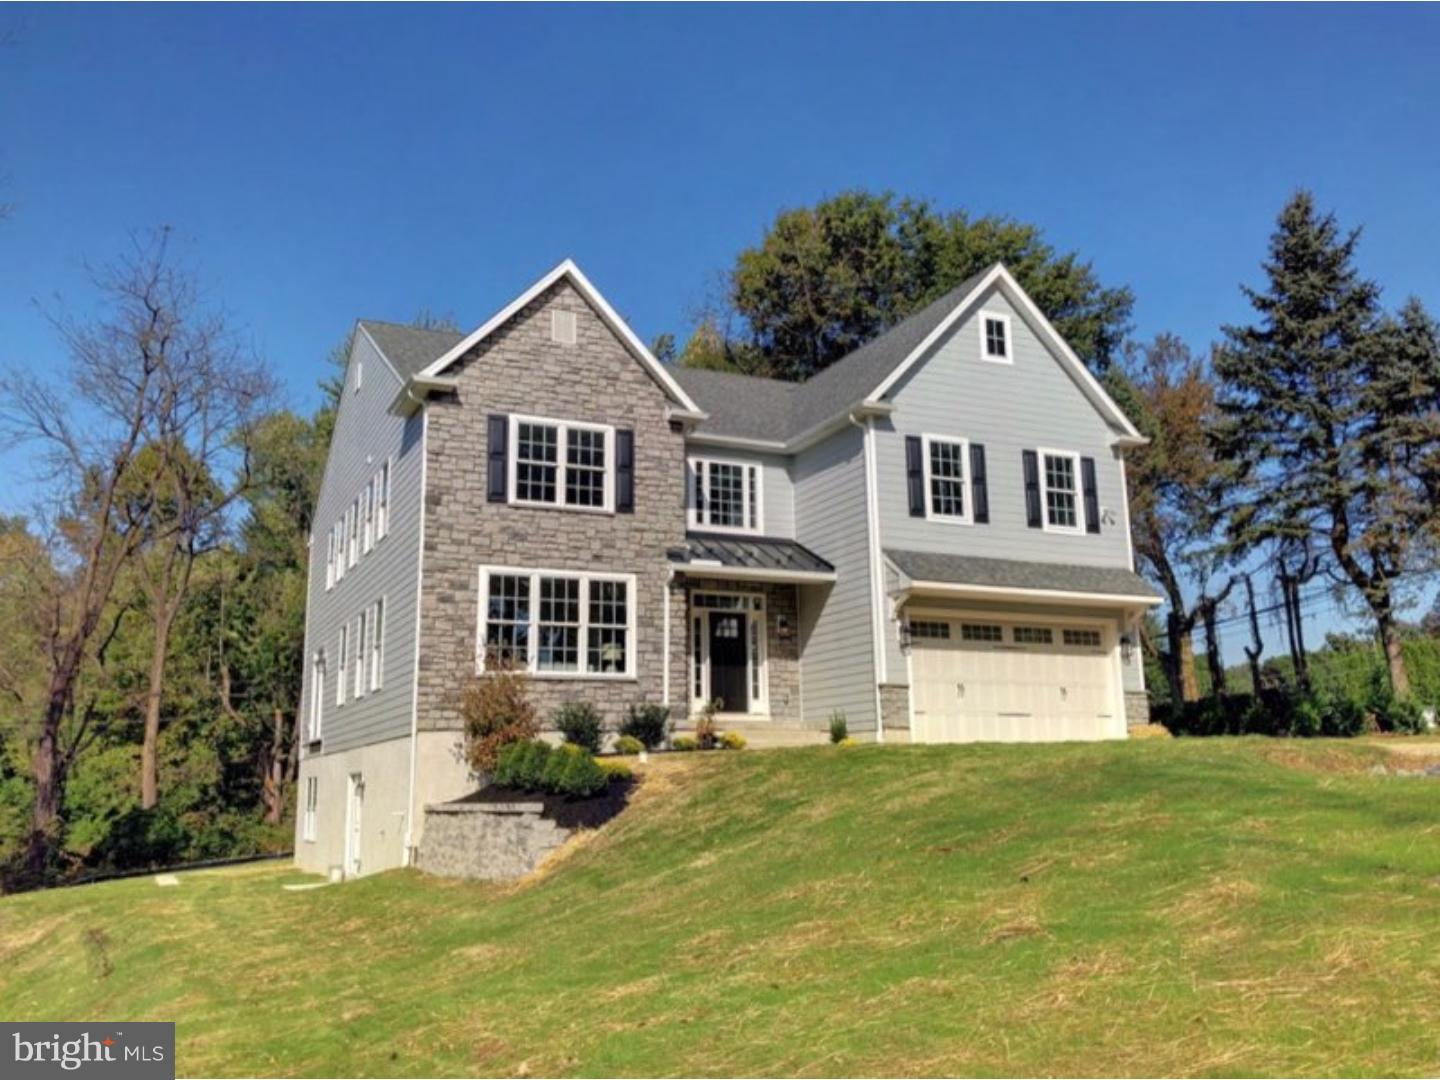 3537 Caley Road Newtown Square, PA 19073